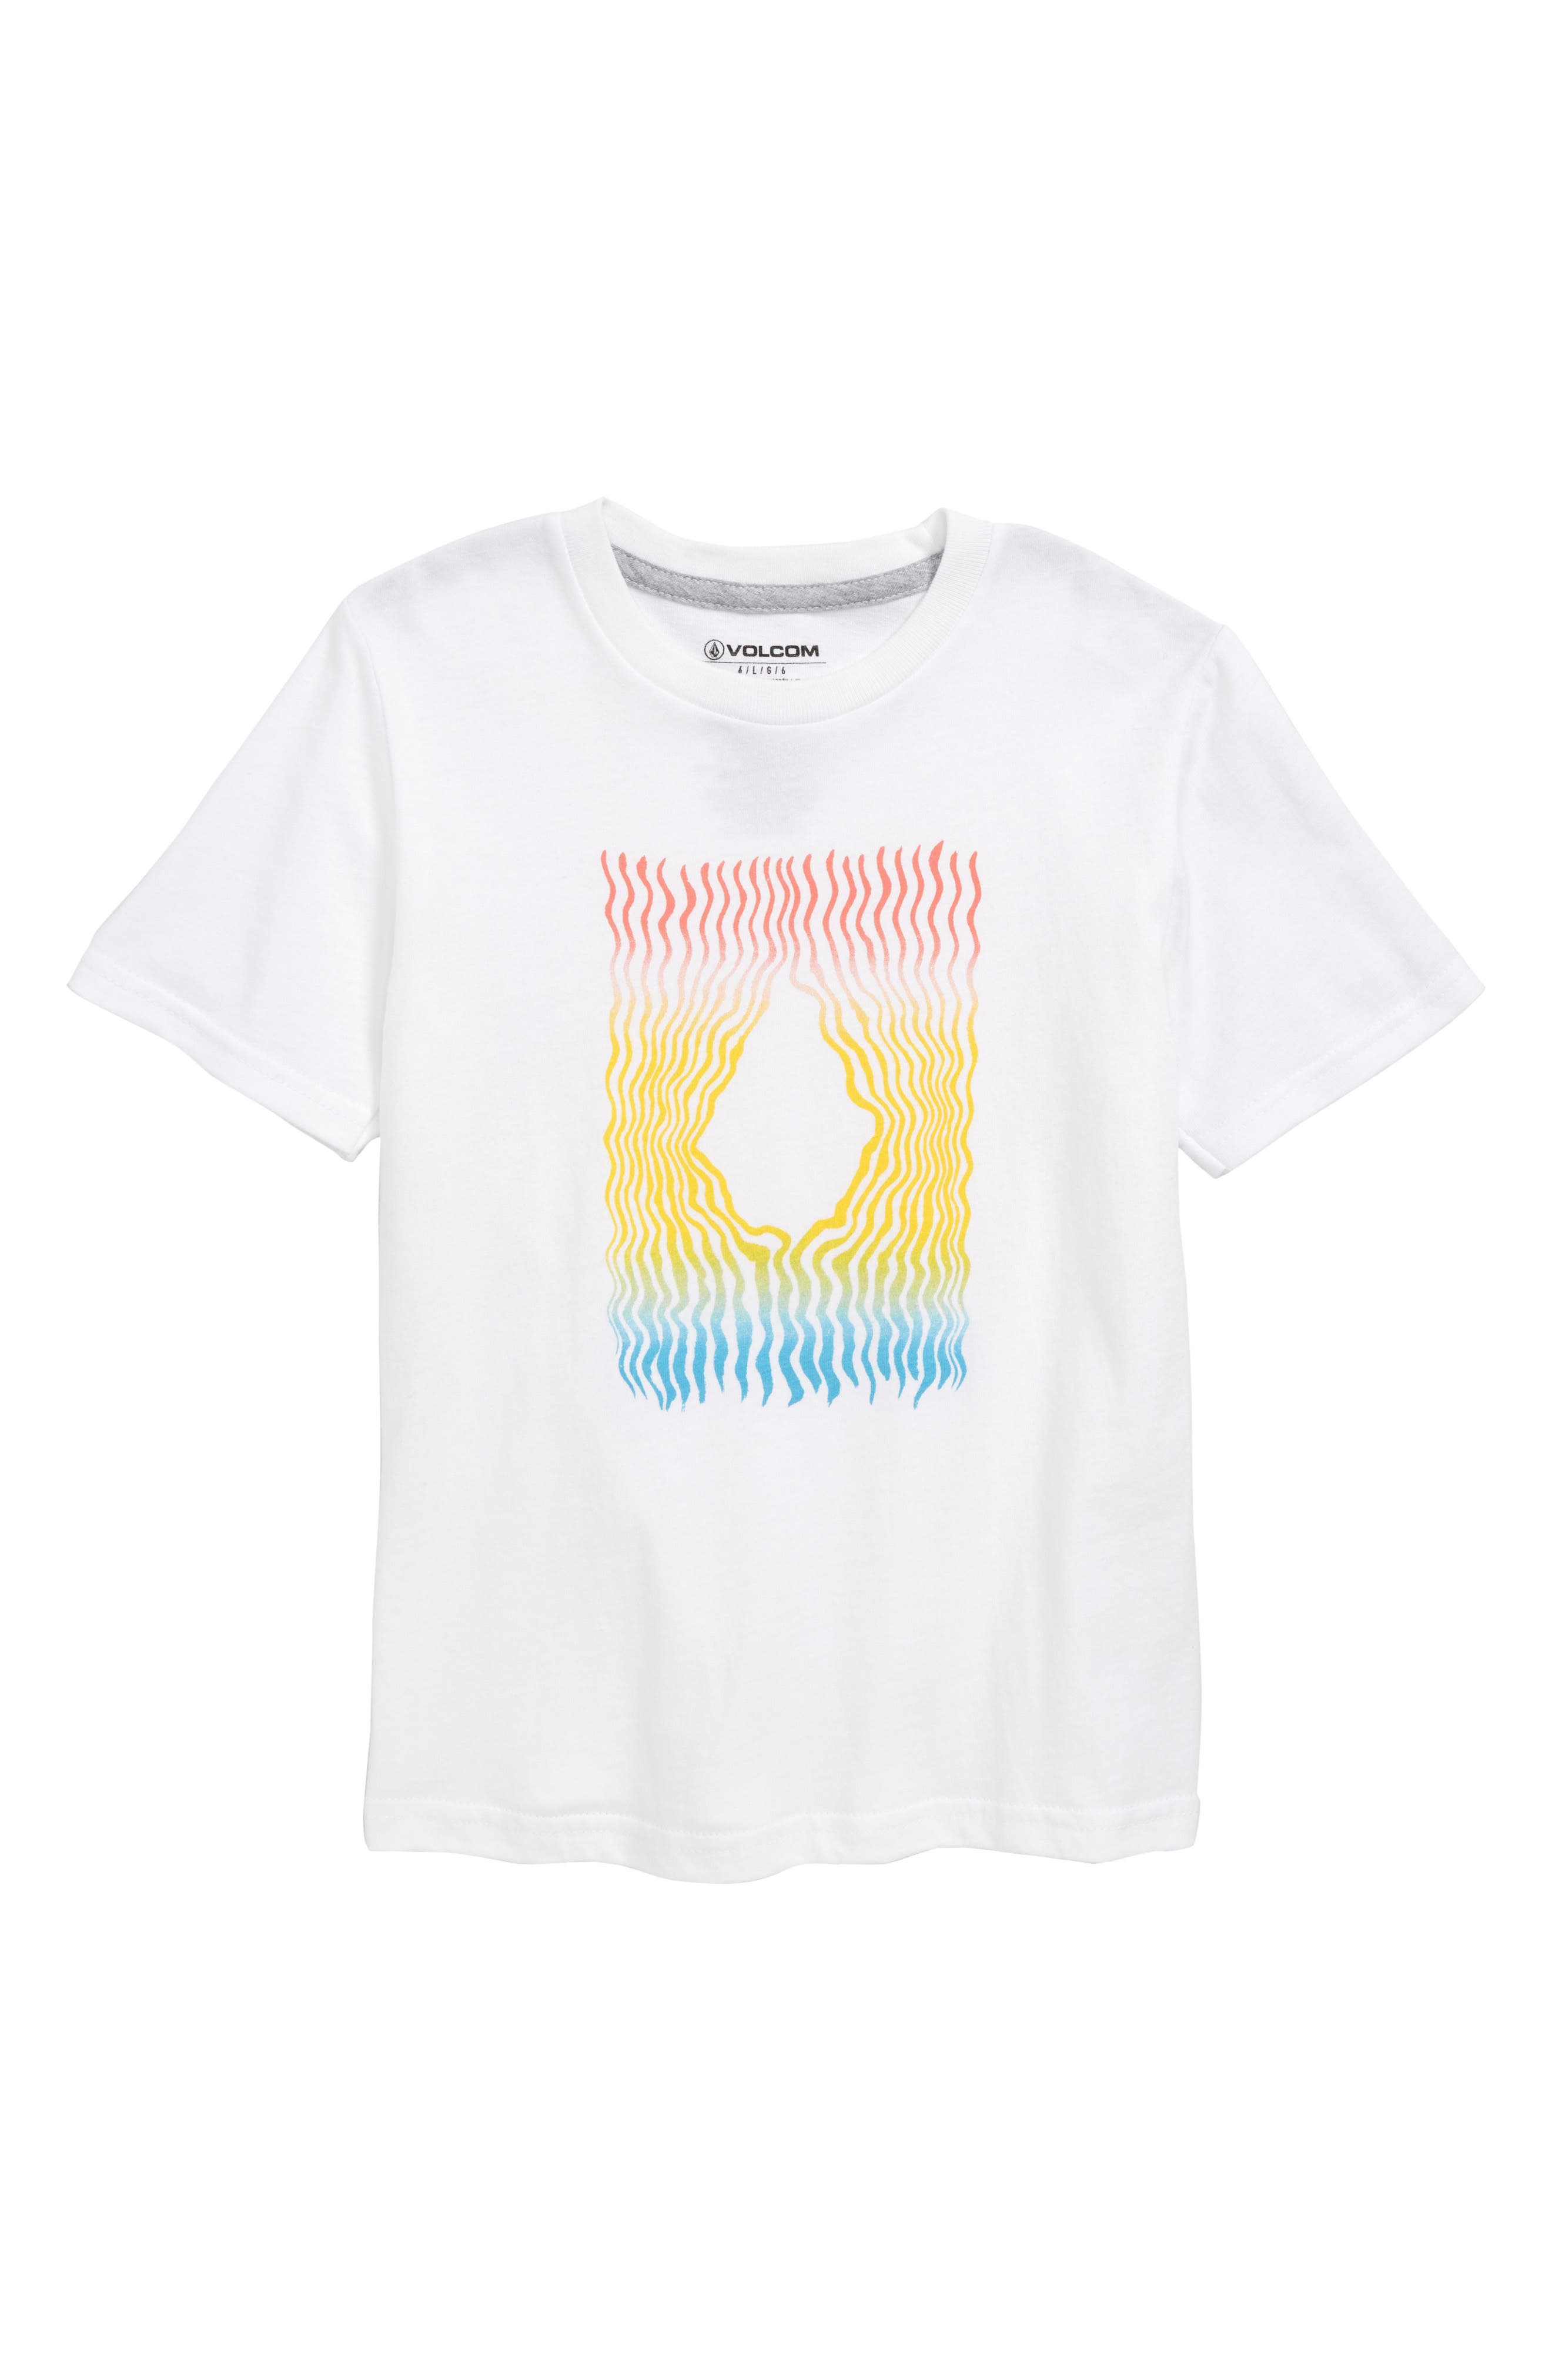 Wiggly Stone Graphic T-Shirt,                         Main,                         color, WHITE